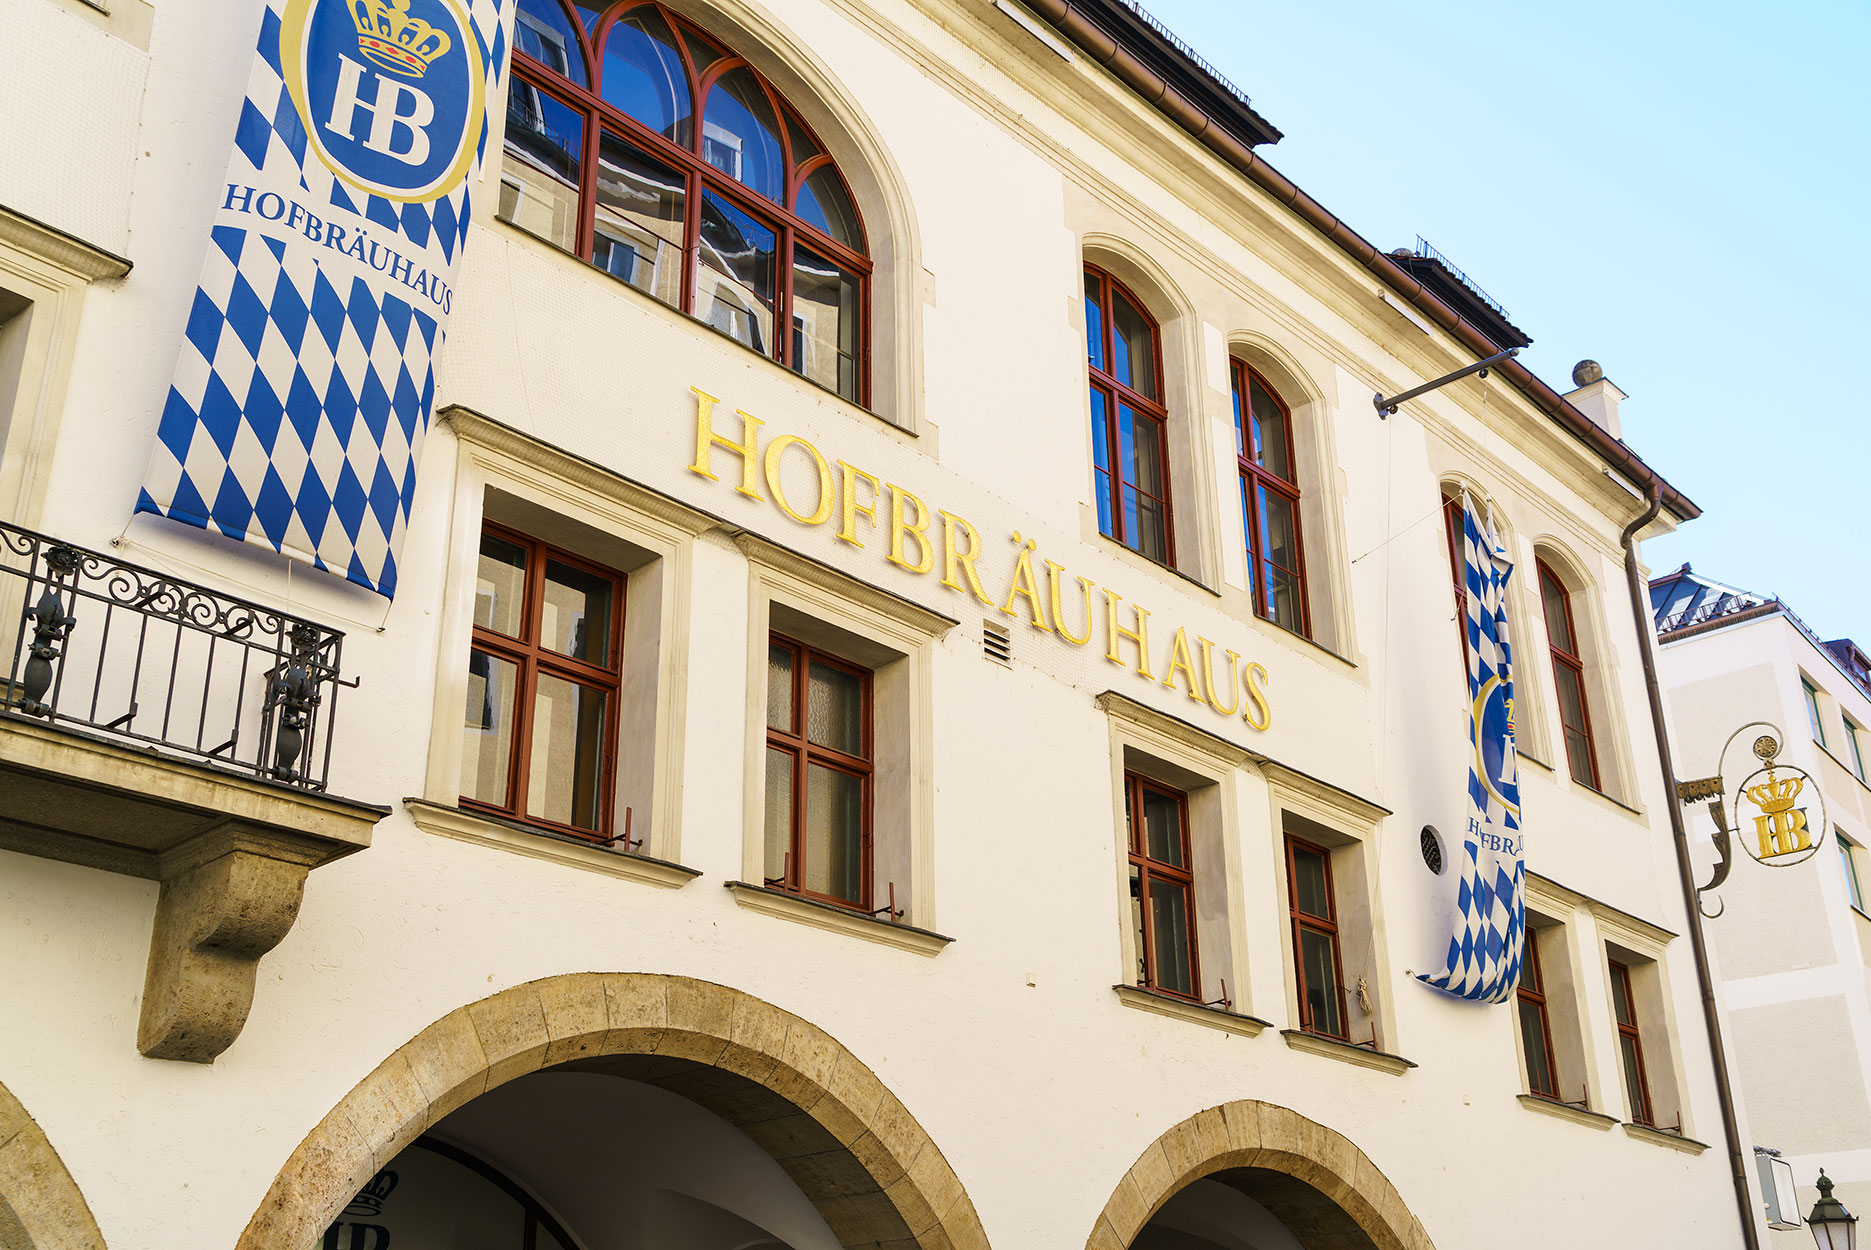 The exterior of Hofbrauhaus in Munich Germany